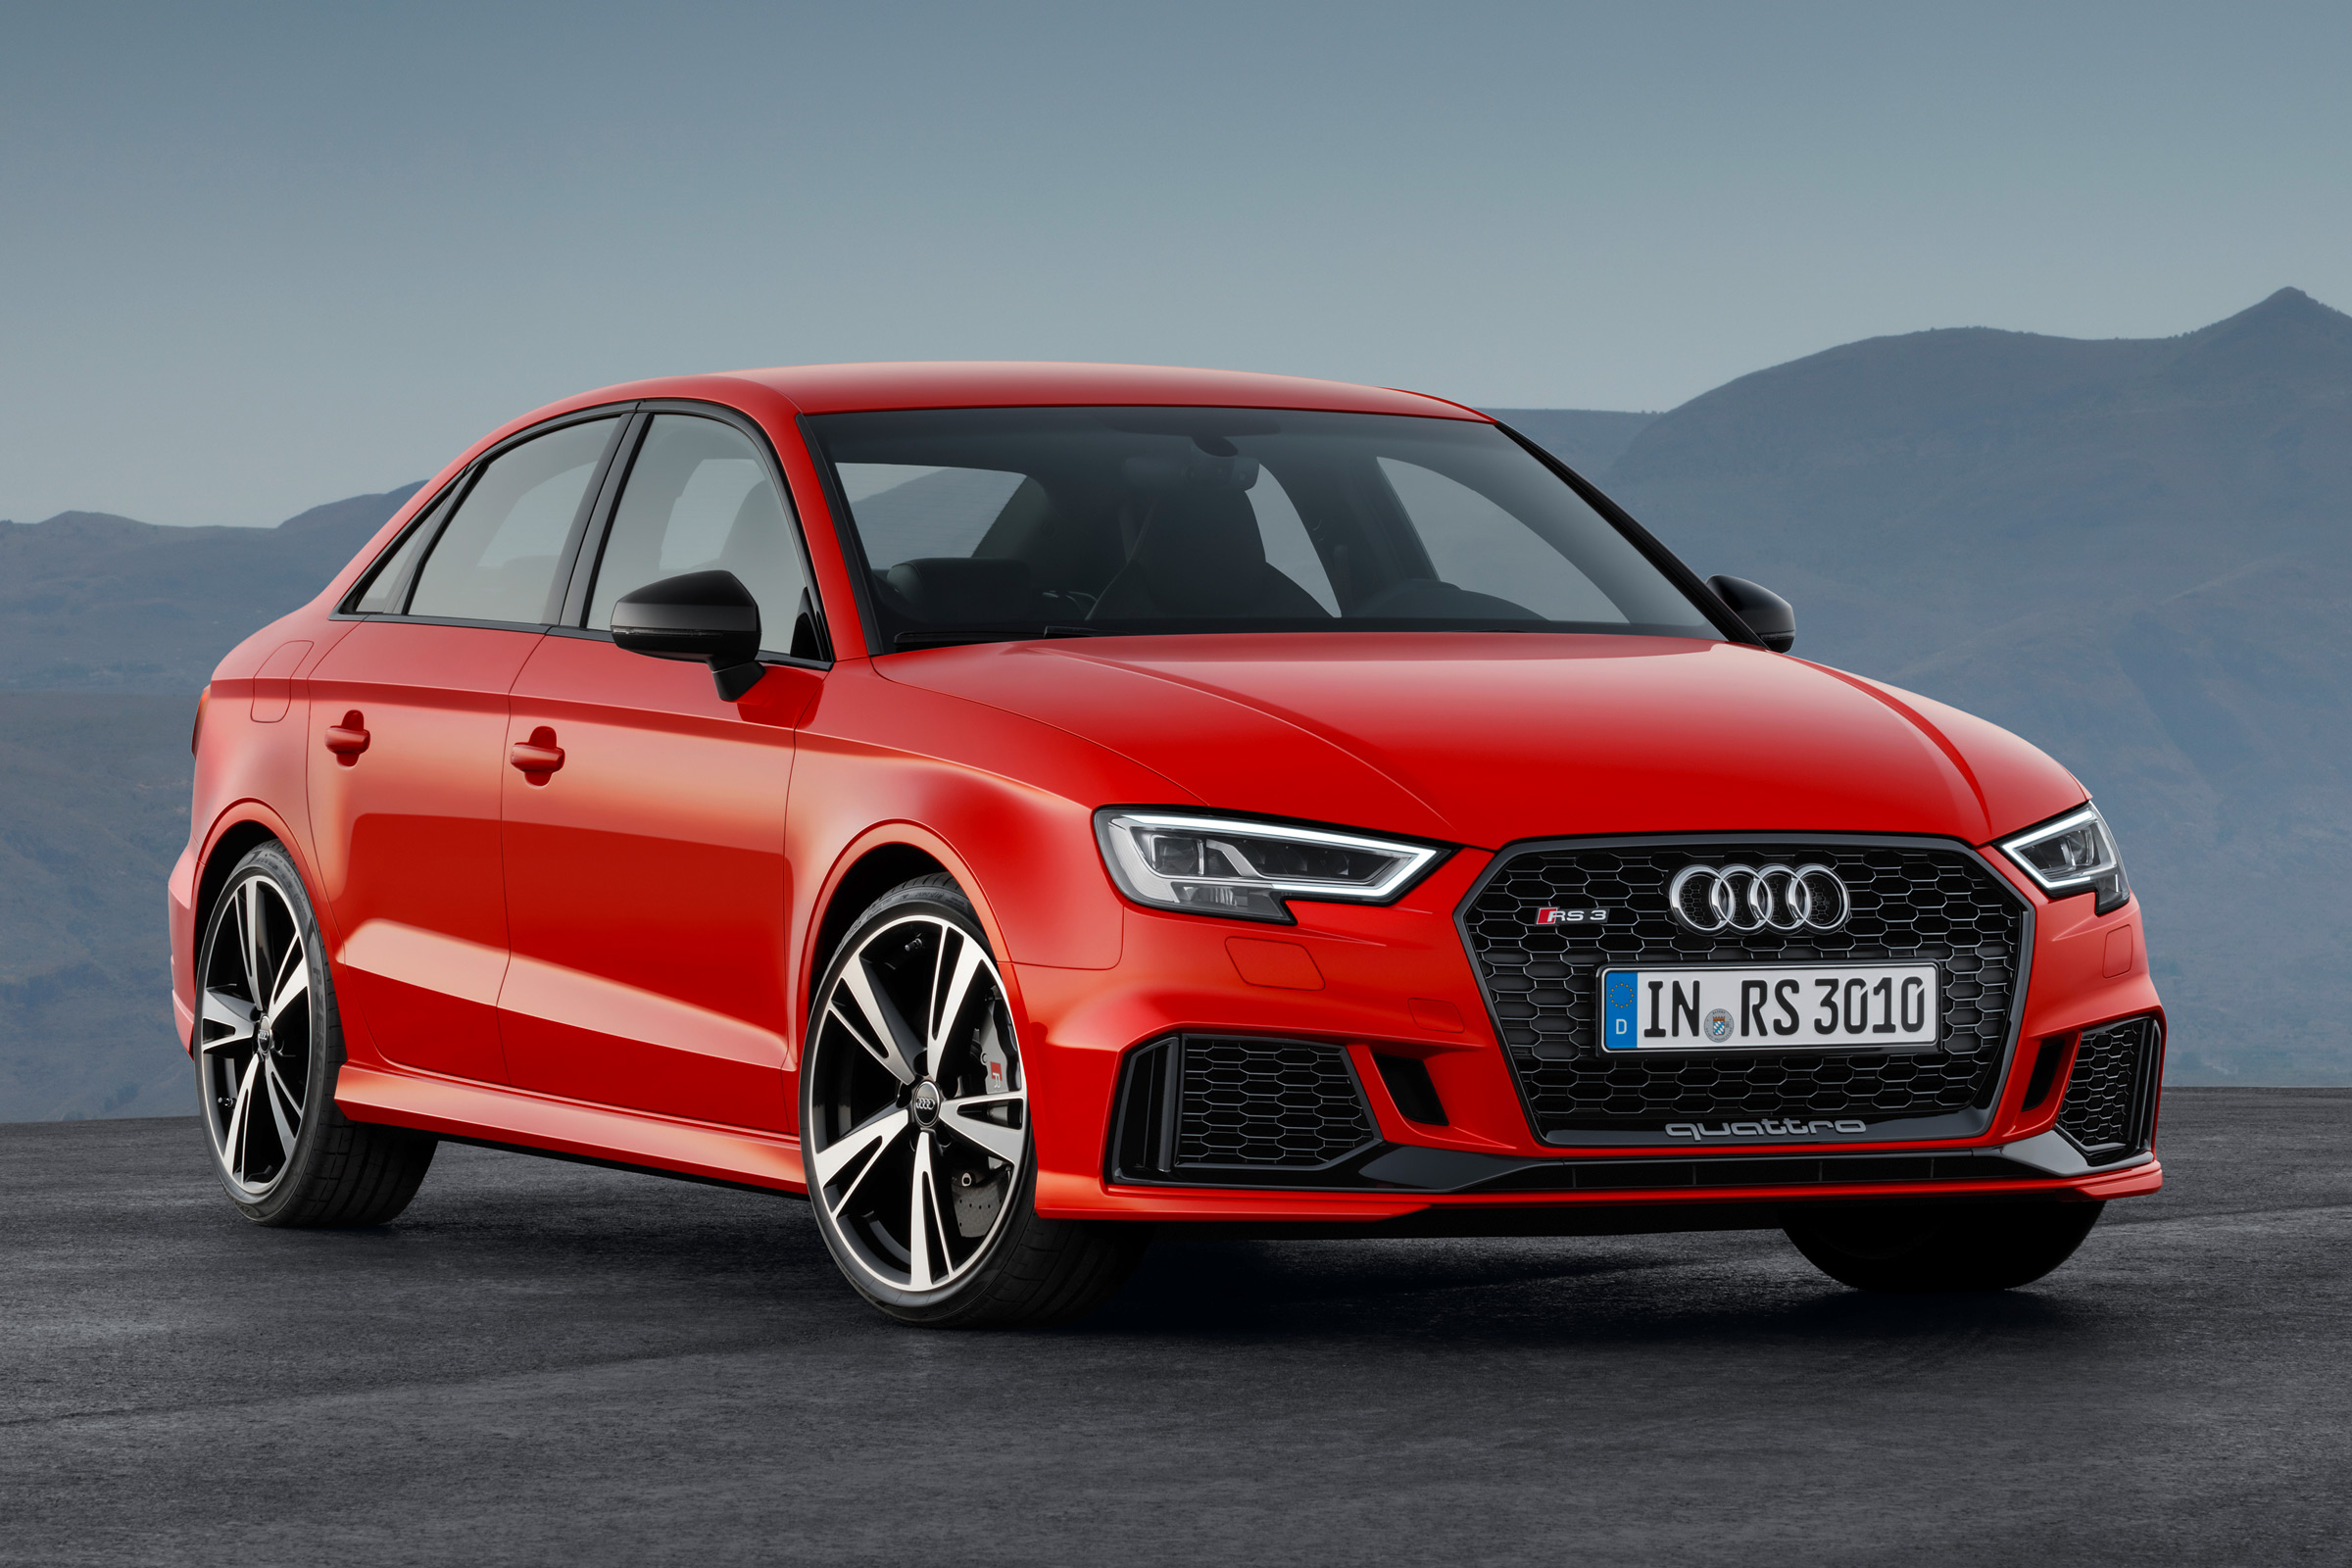 New Audi Rs3 Saloon Prices And Specs Revealed Auto Express